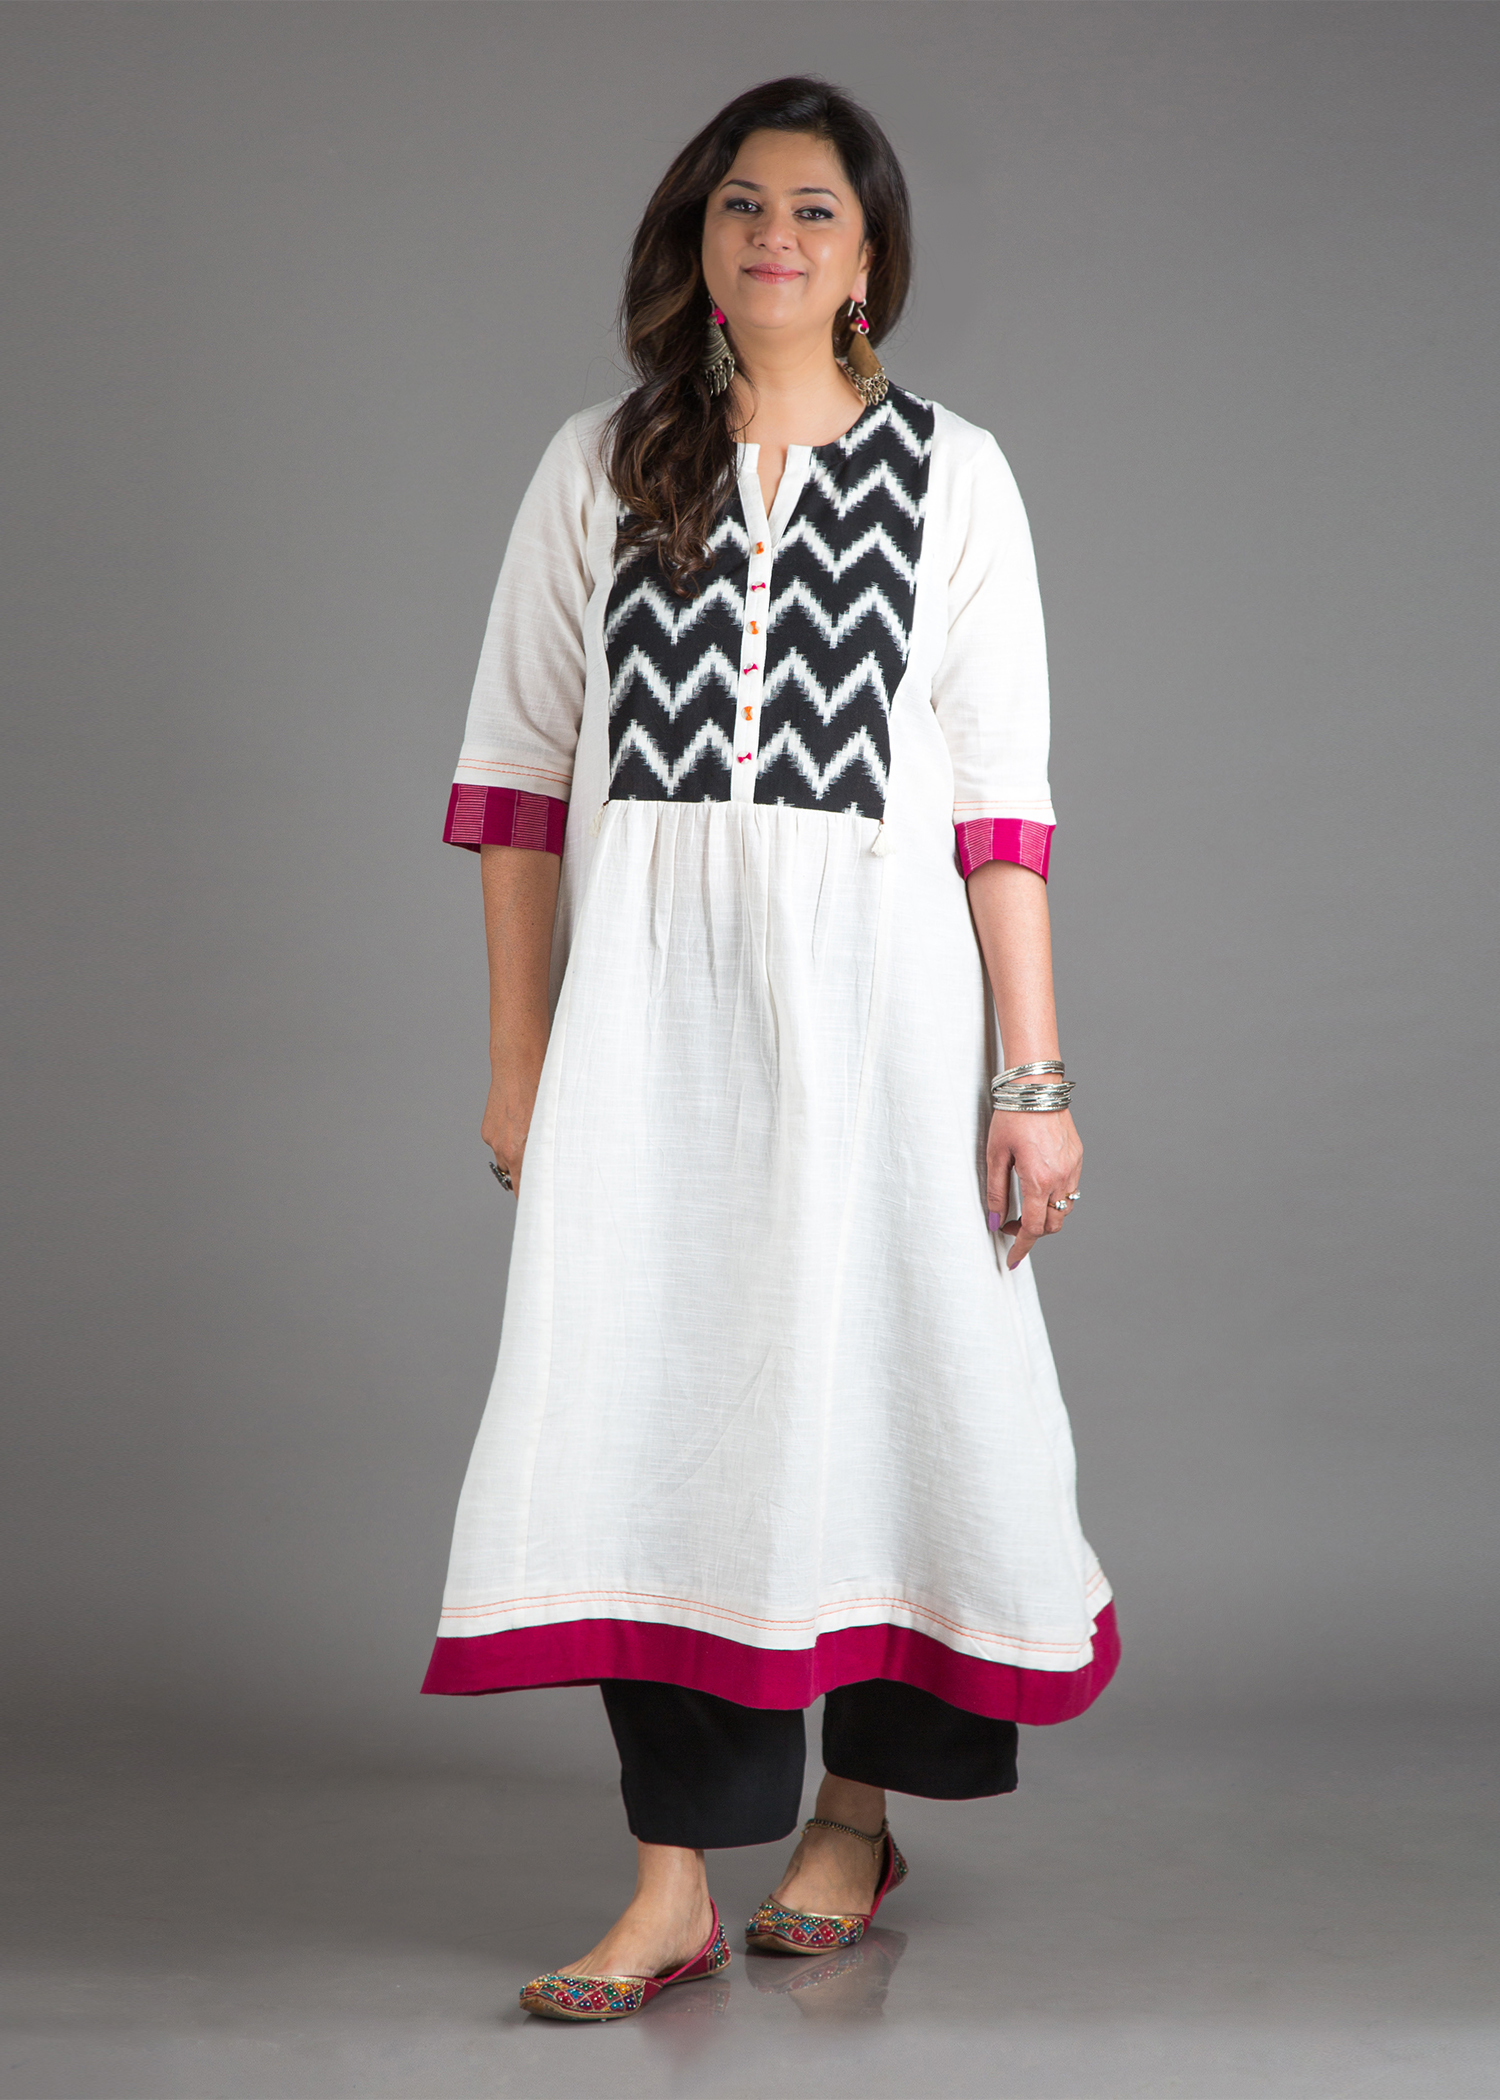 The Mixed Berry Kurta - Handwoven Cotton with Handwoven Ikat Yoke